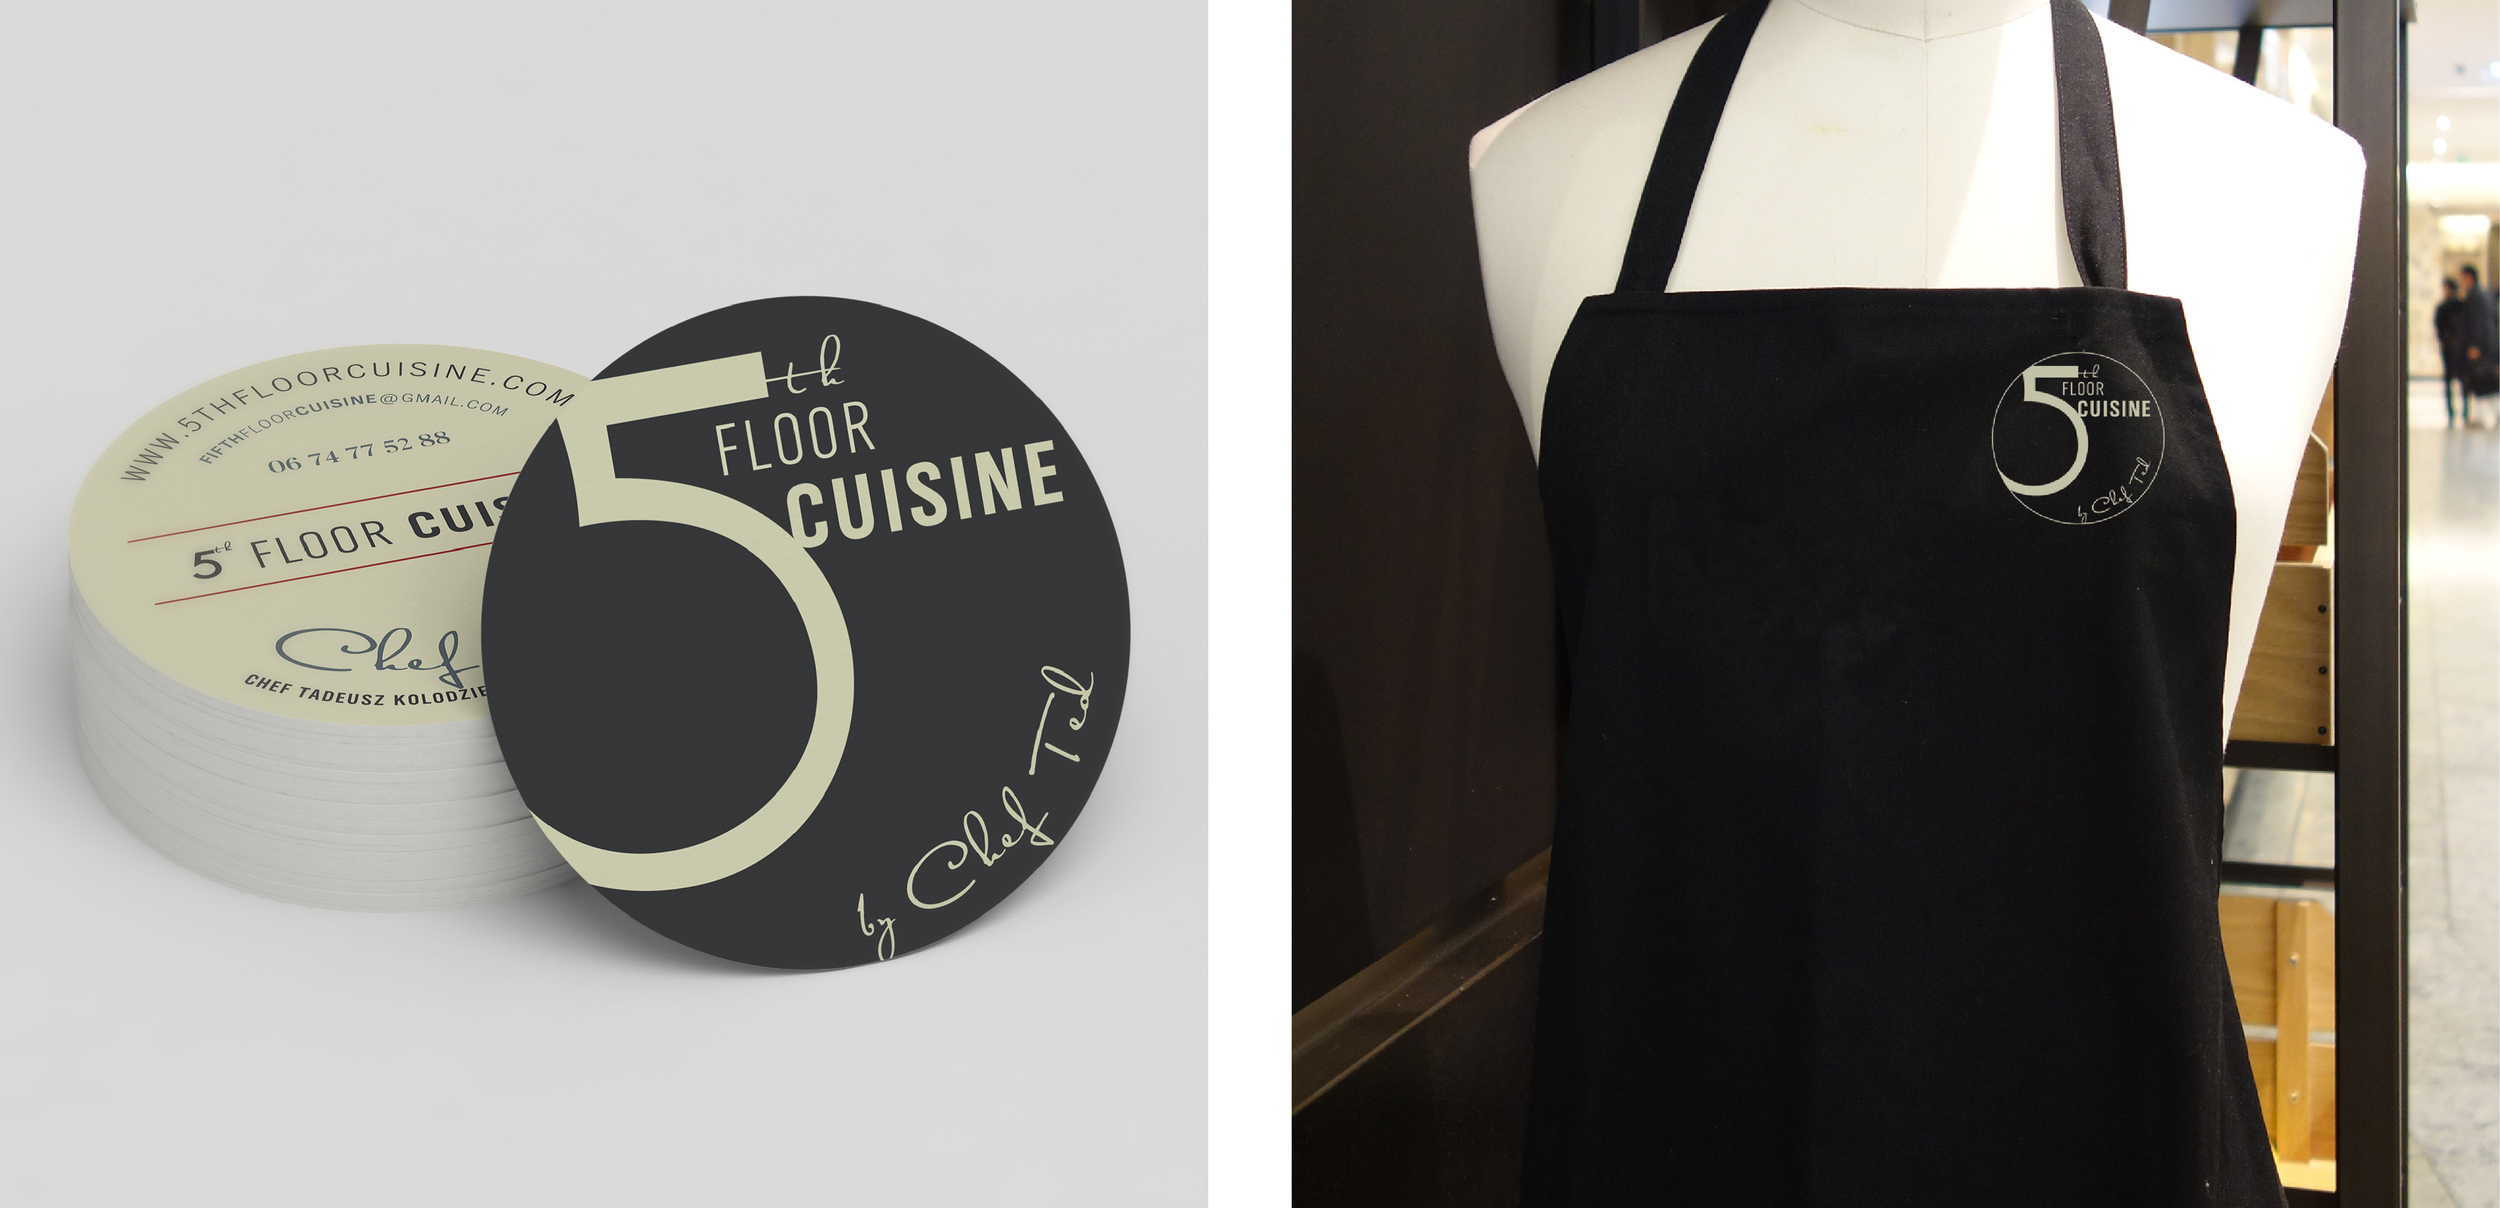 5th Floor Cuisine business cards and apron